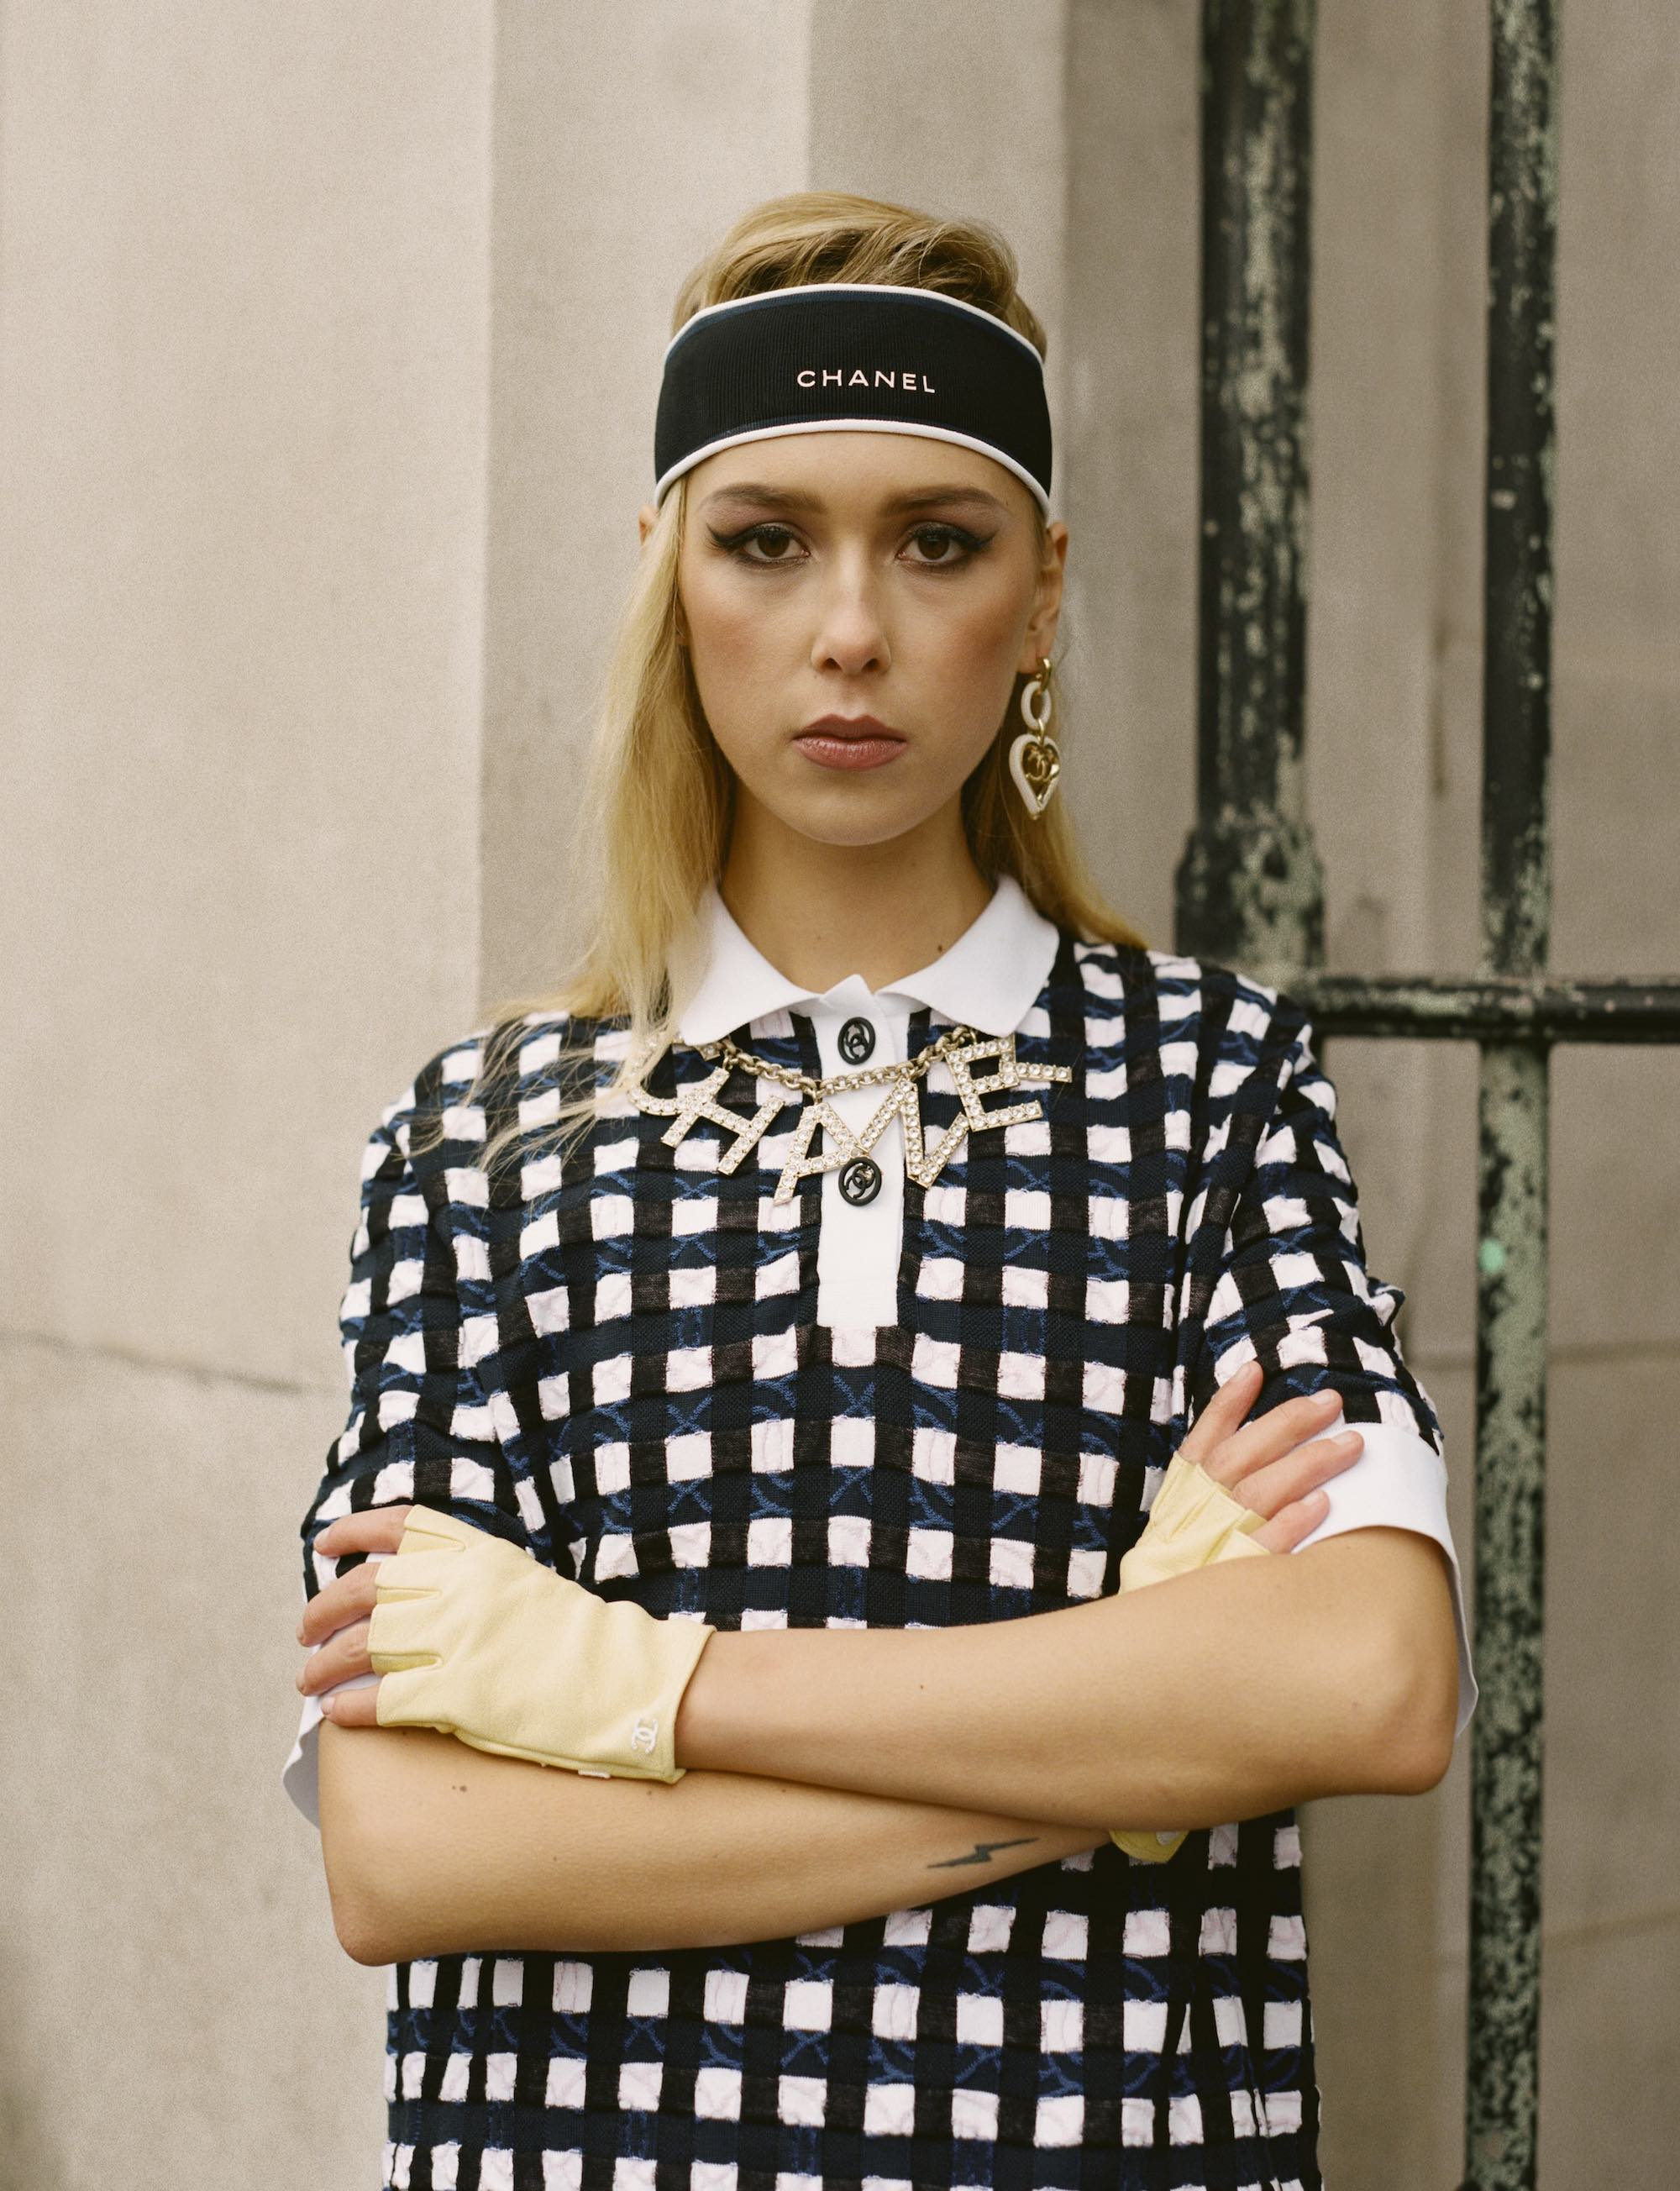 Chanel SS19 fashion editorial in Wonderland Spring 19 issue gingham dress